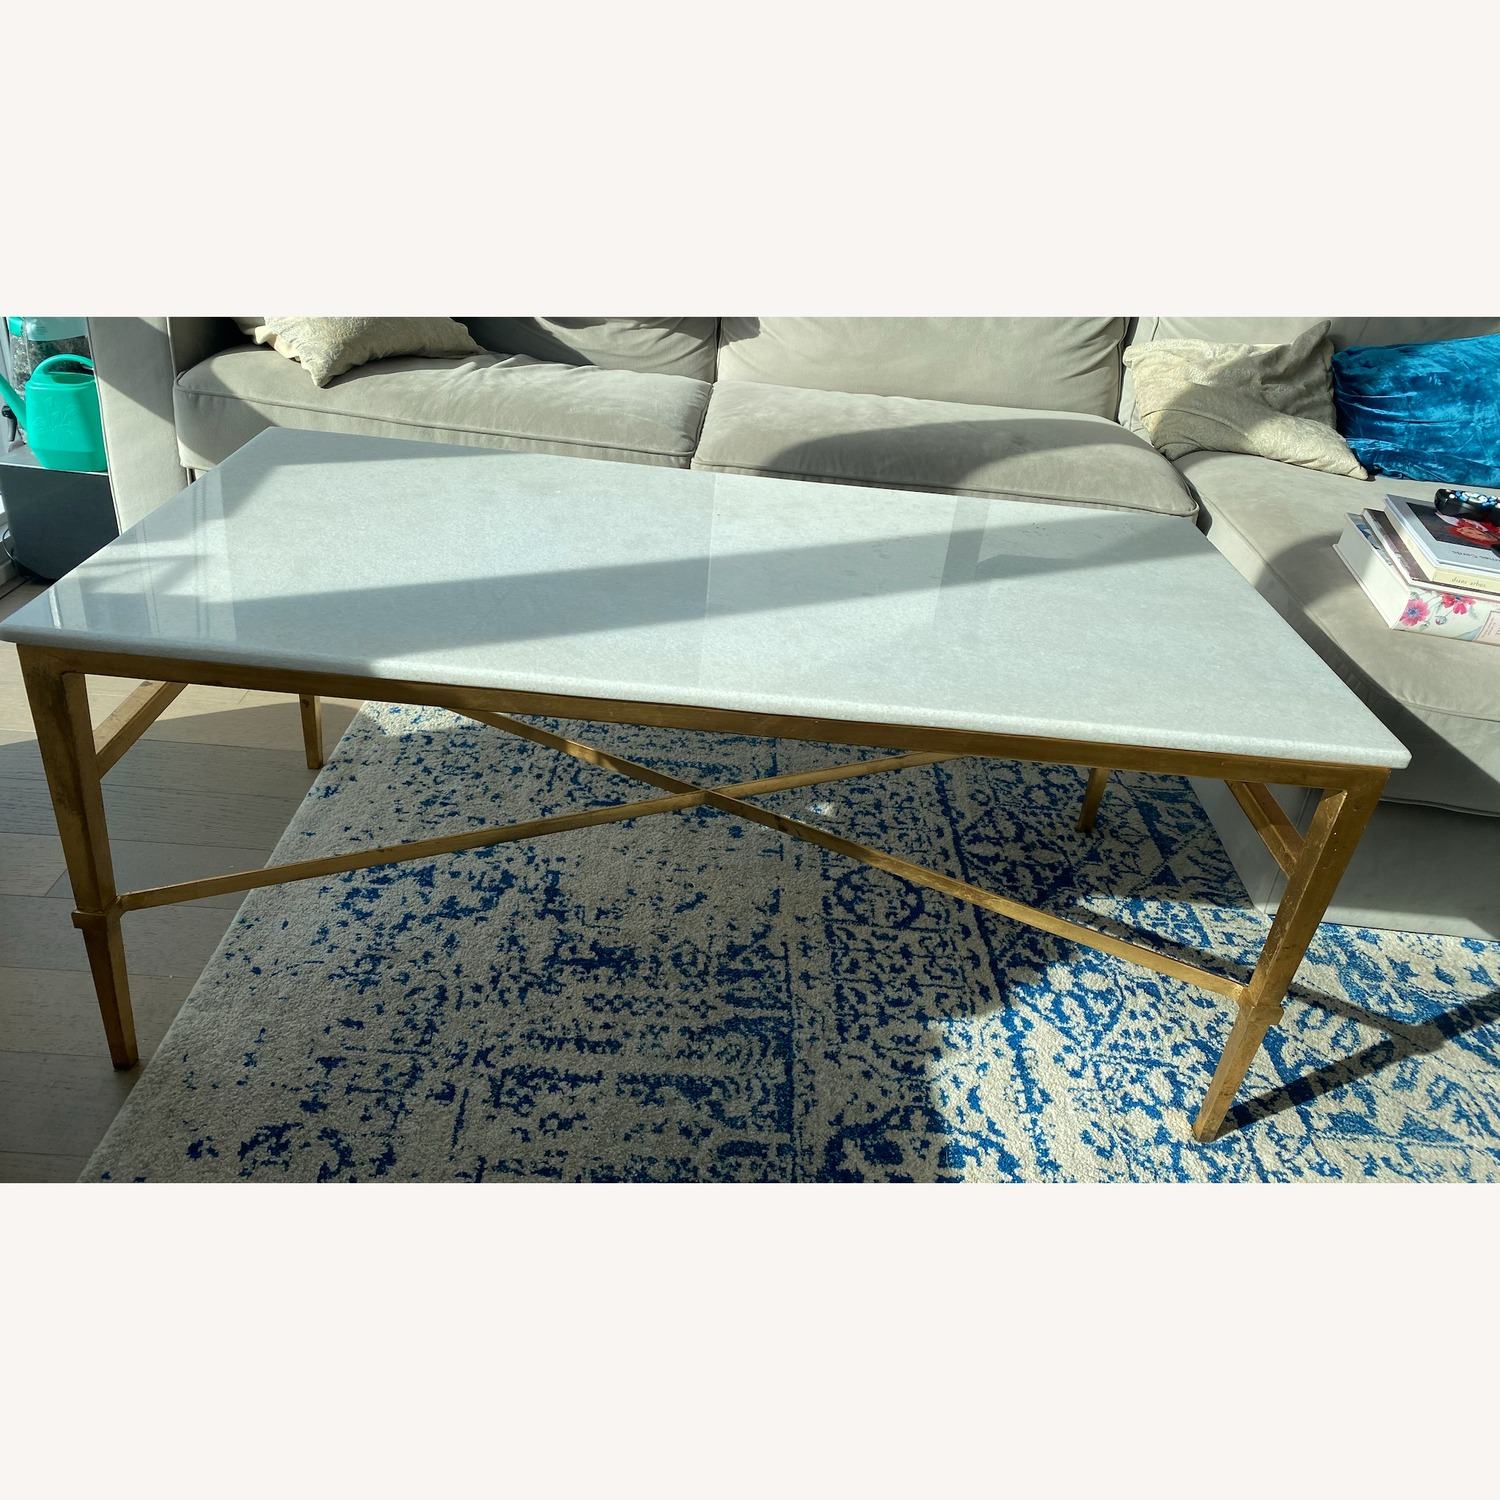 Safavieh Couture Gold & Marble Acker Coffee Table - image-2